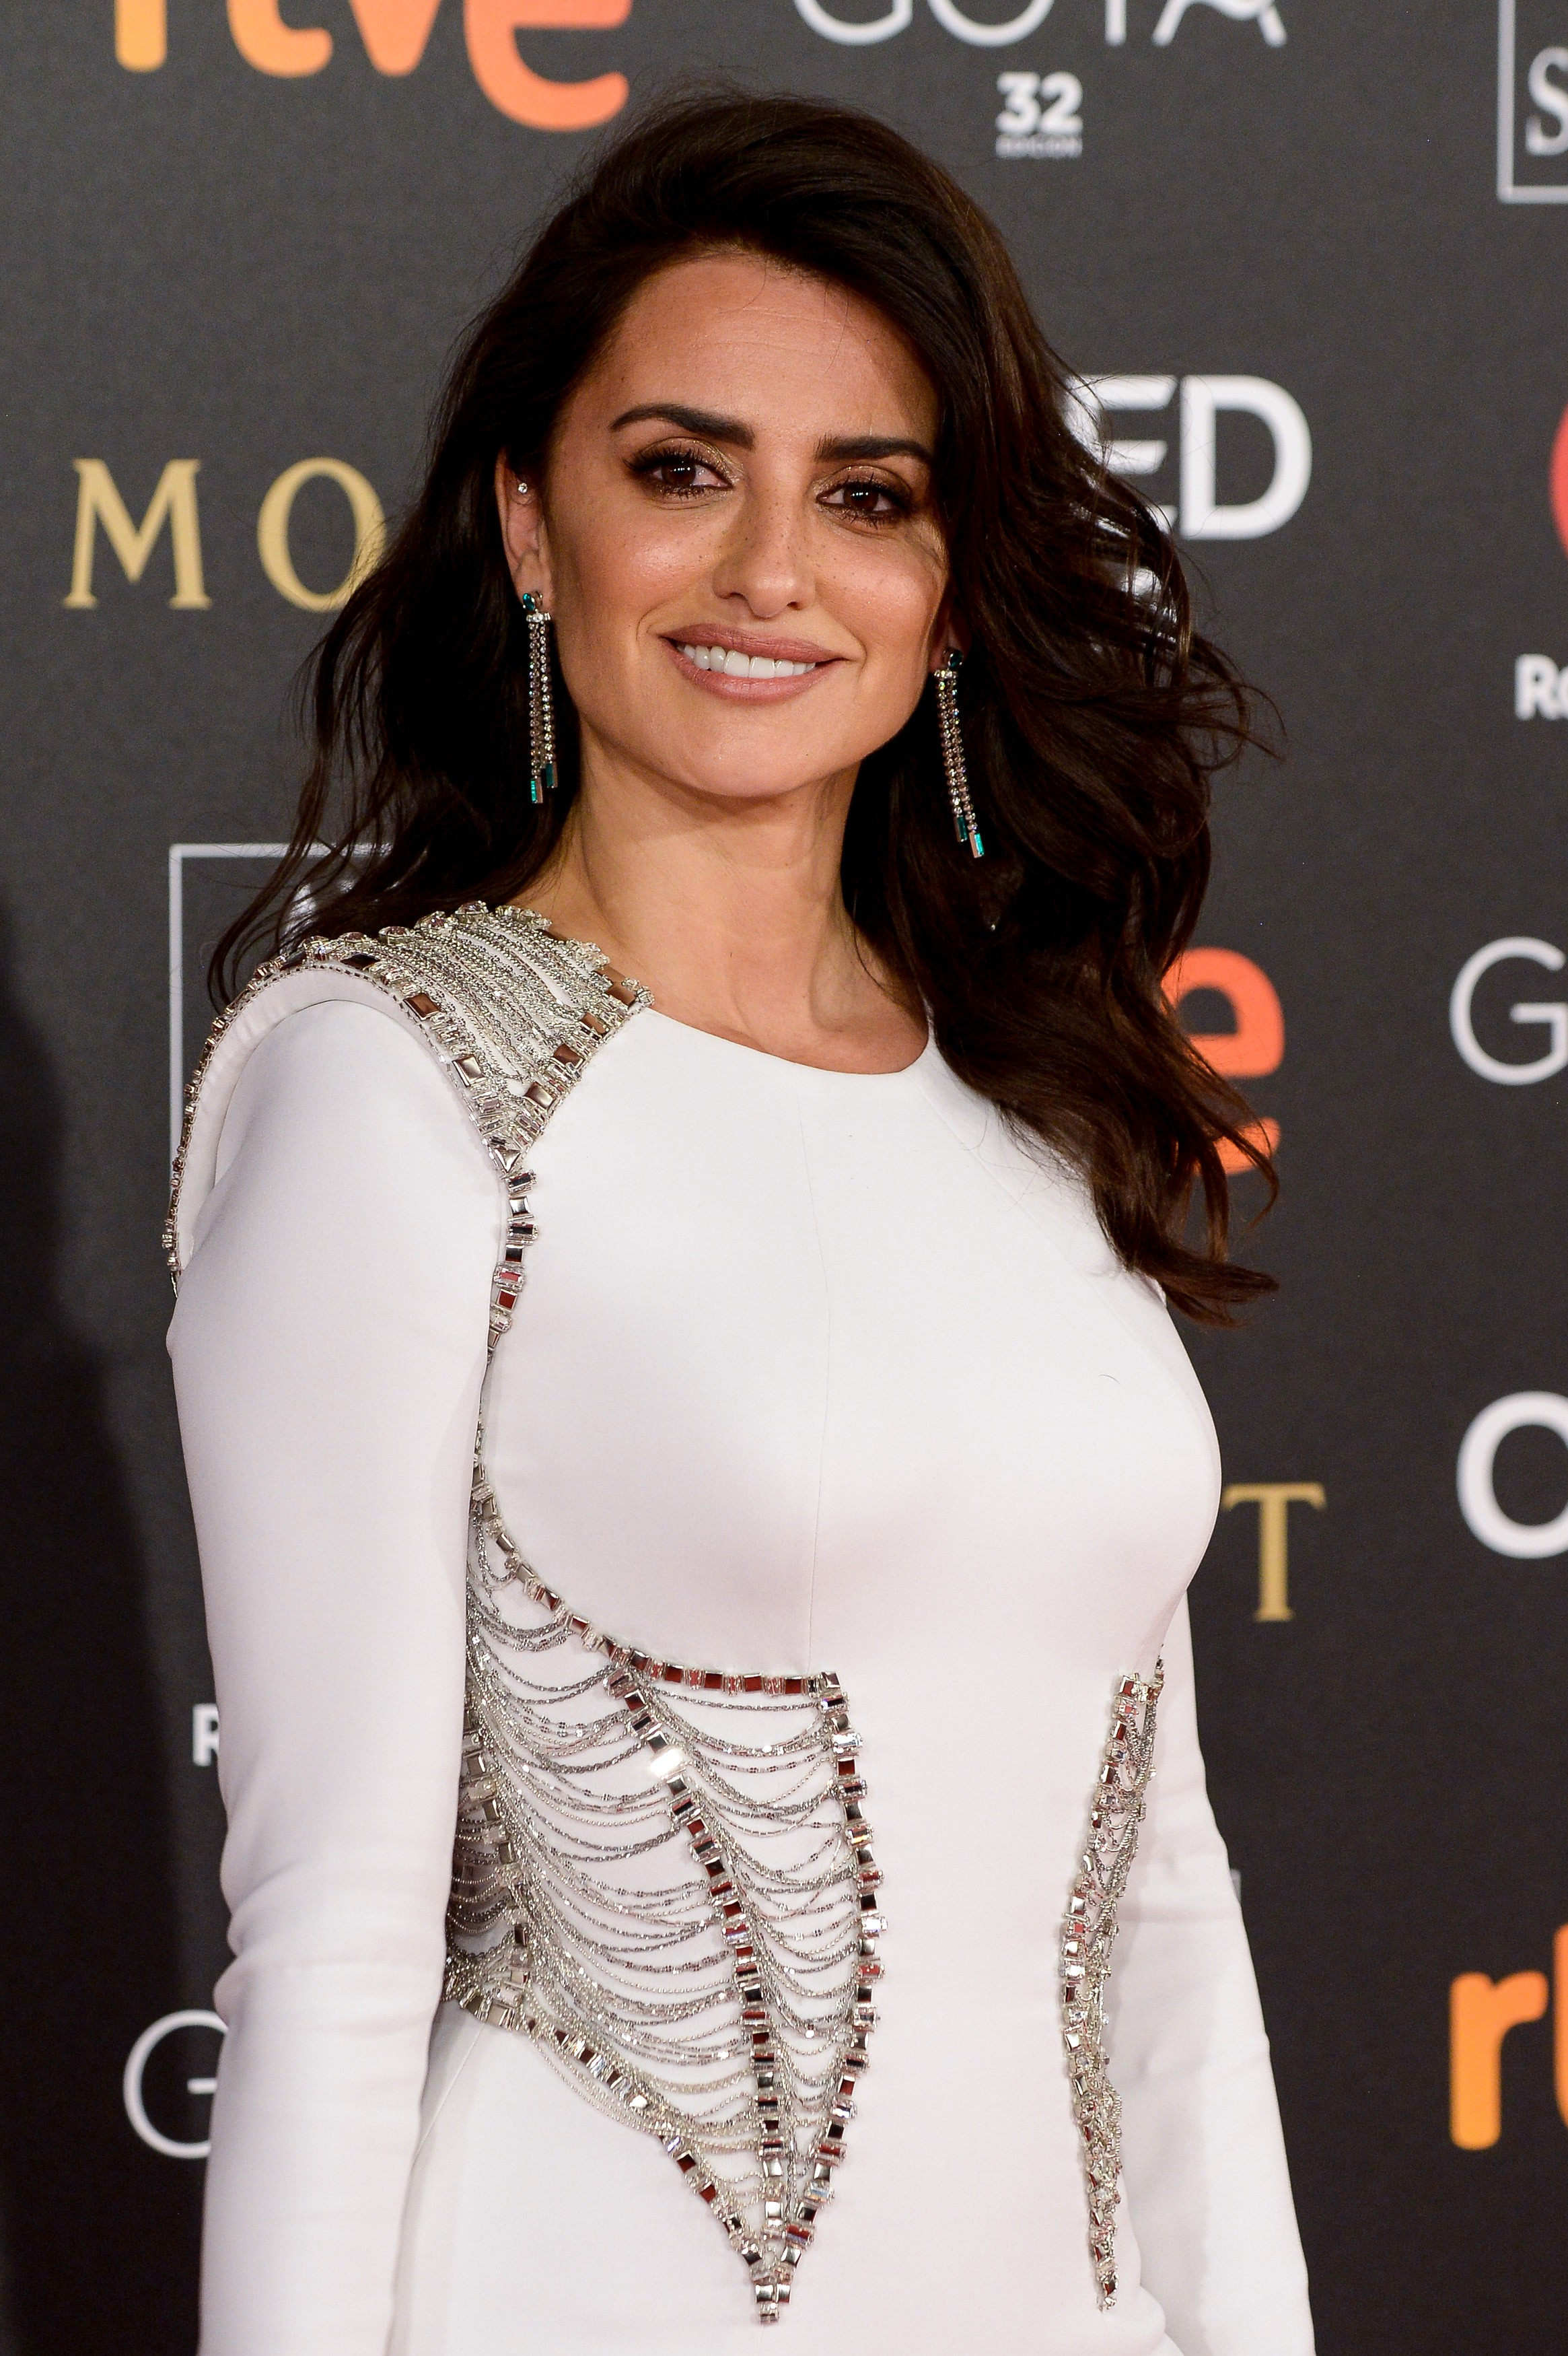 MADRID, SPAIN - FEBRUARY 03:  Penelope Cruz attends Goya Cinema Awards 2018 at Madrid Marriott Auditorium on February 3, 2018 in Madrid, Spain.  (Photo by Carlos Alvarez/Getty Images) (Foto: Getty Images)